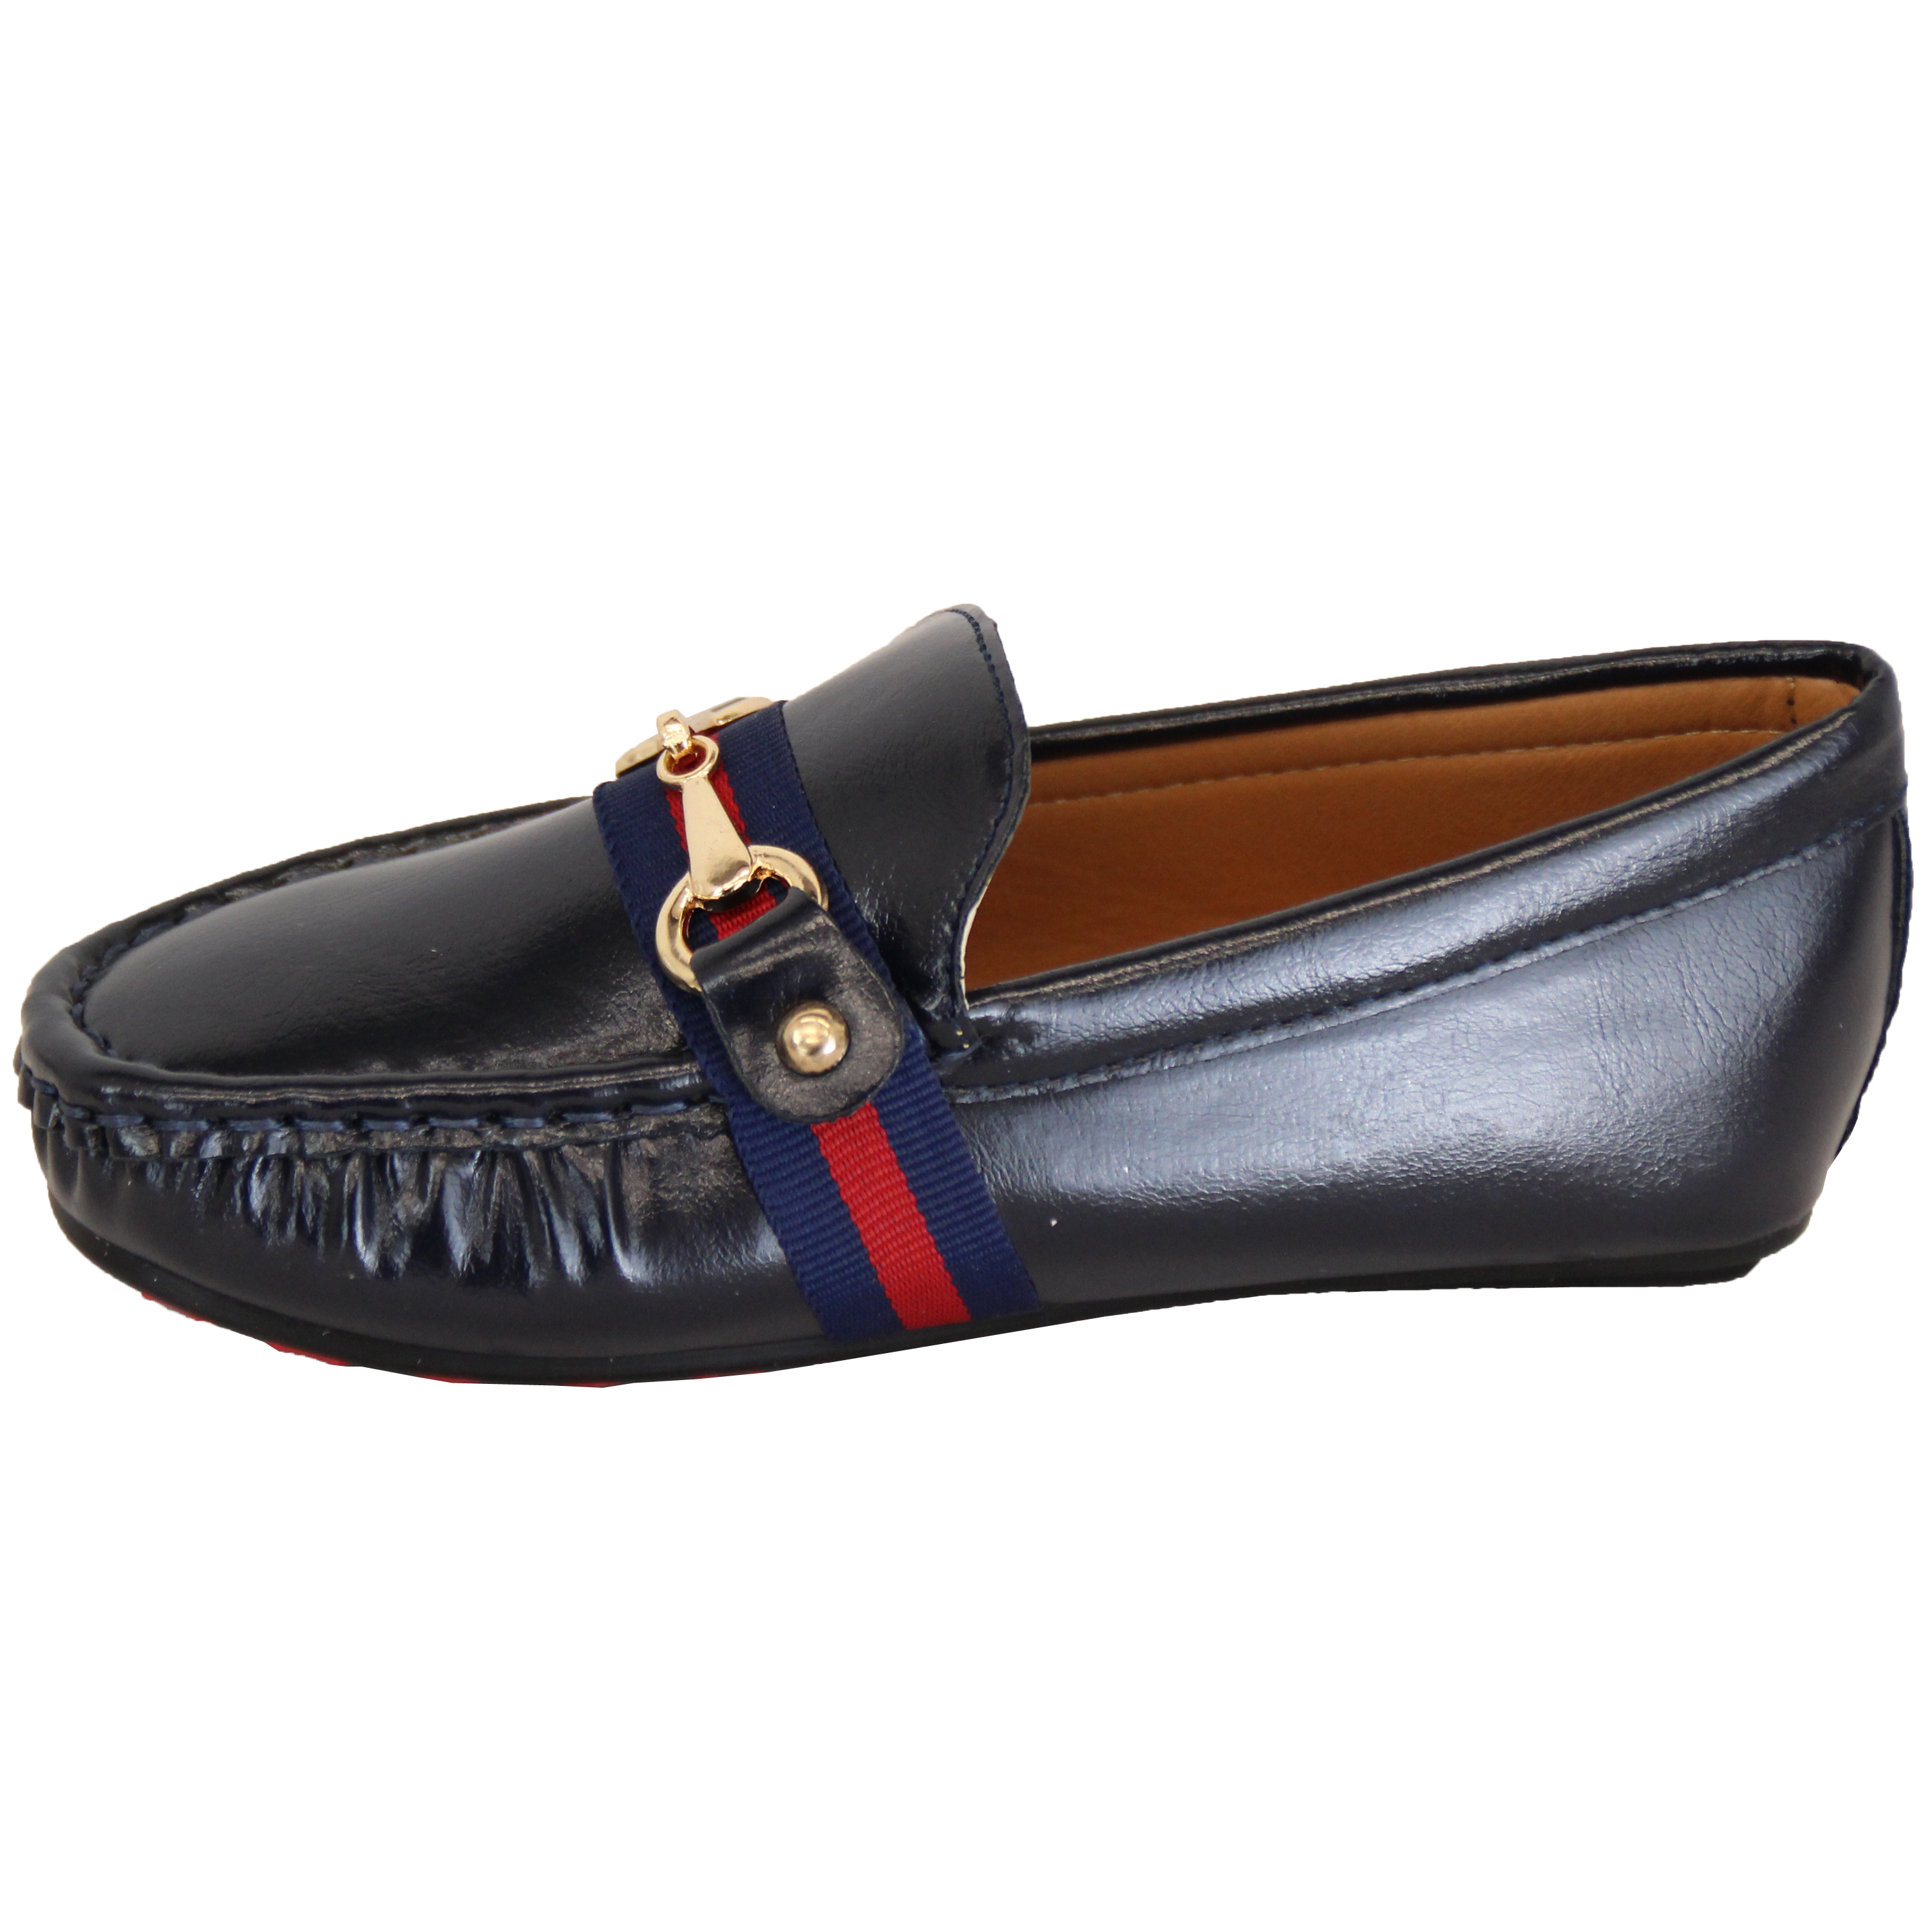 Boys Moccasins Kids Boat Deck Shoes Driving Slip On Loafers Ribbon Bow Fashion